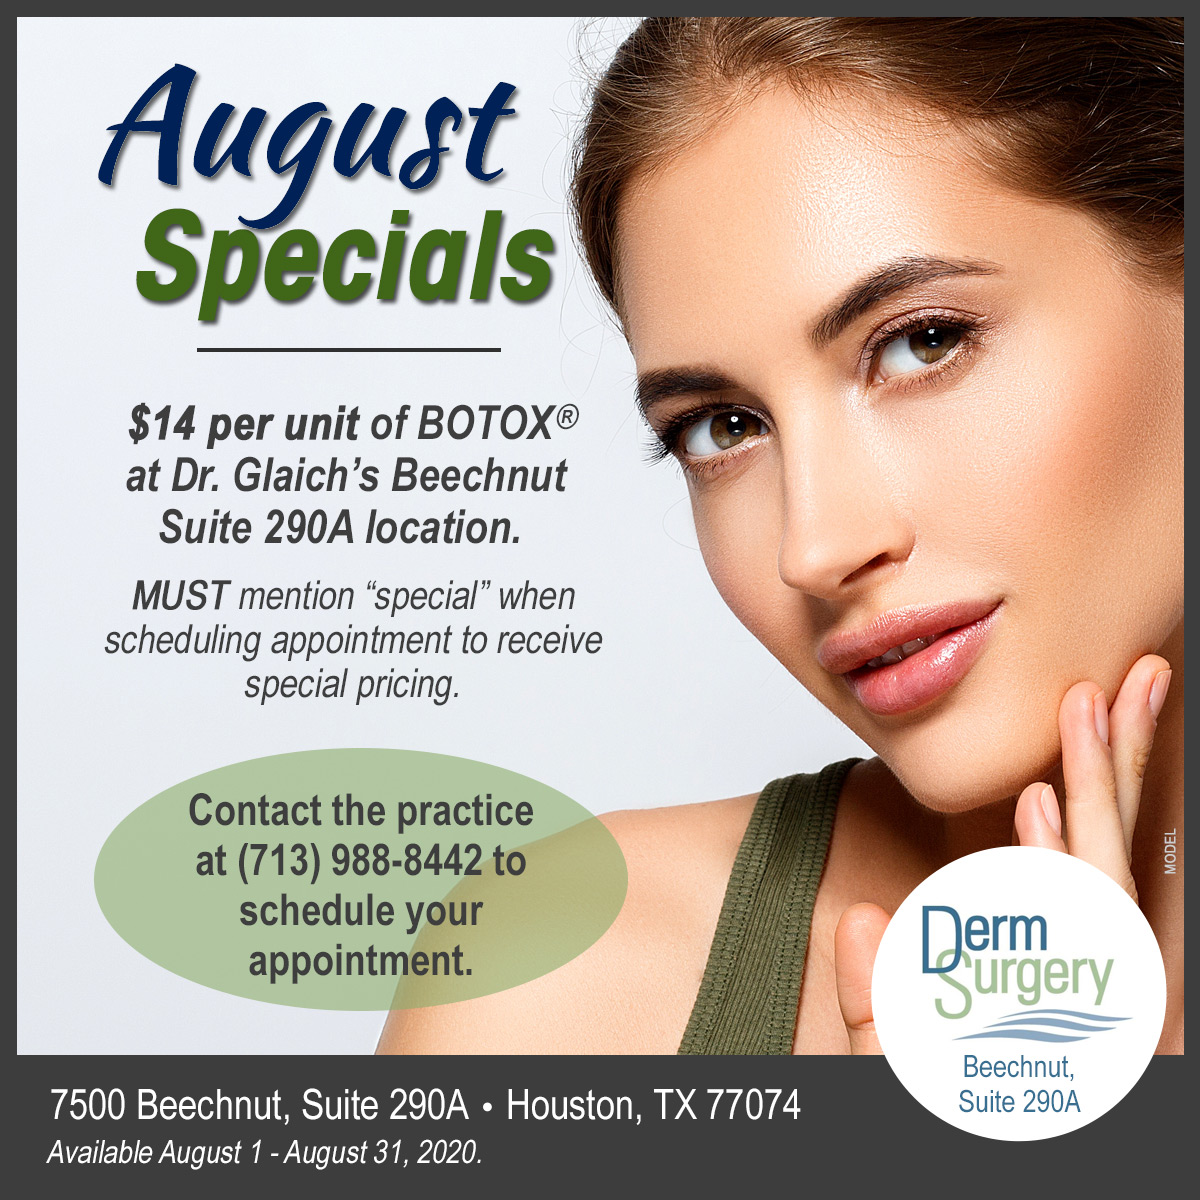 Dr. Glaich's August Special